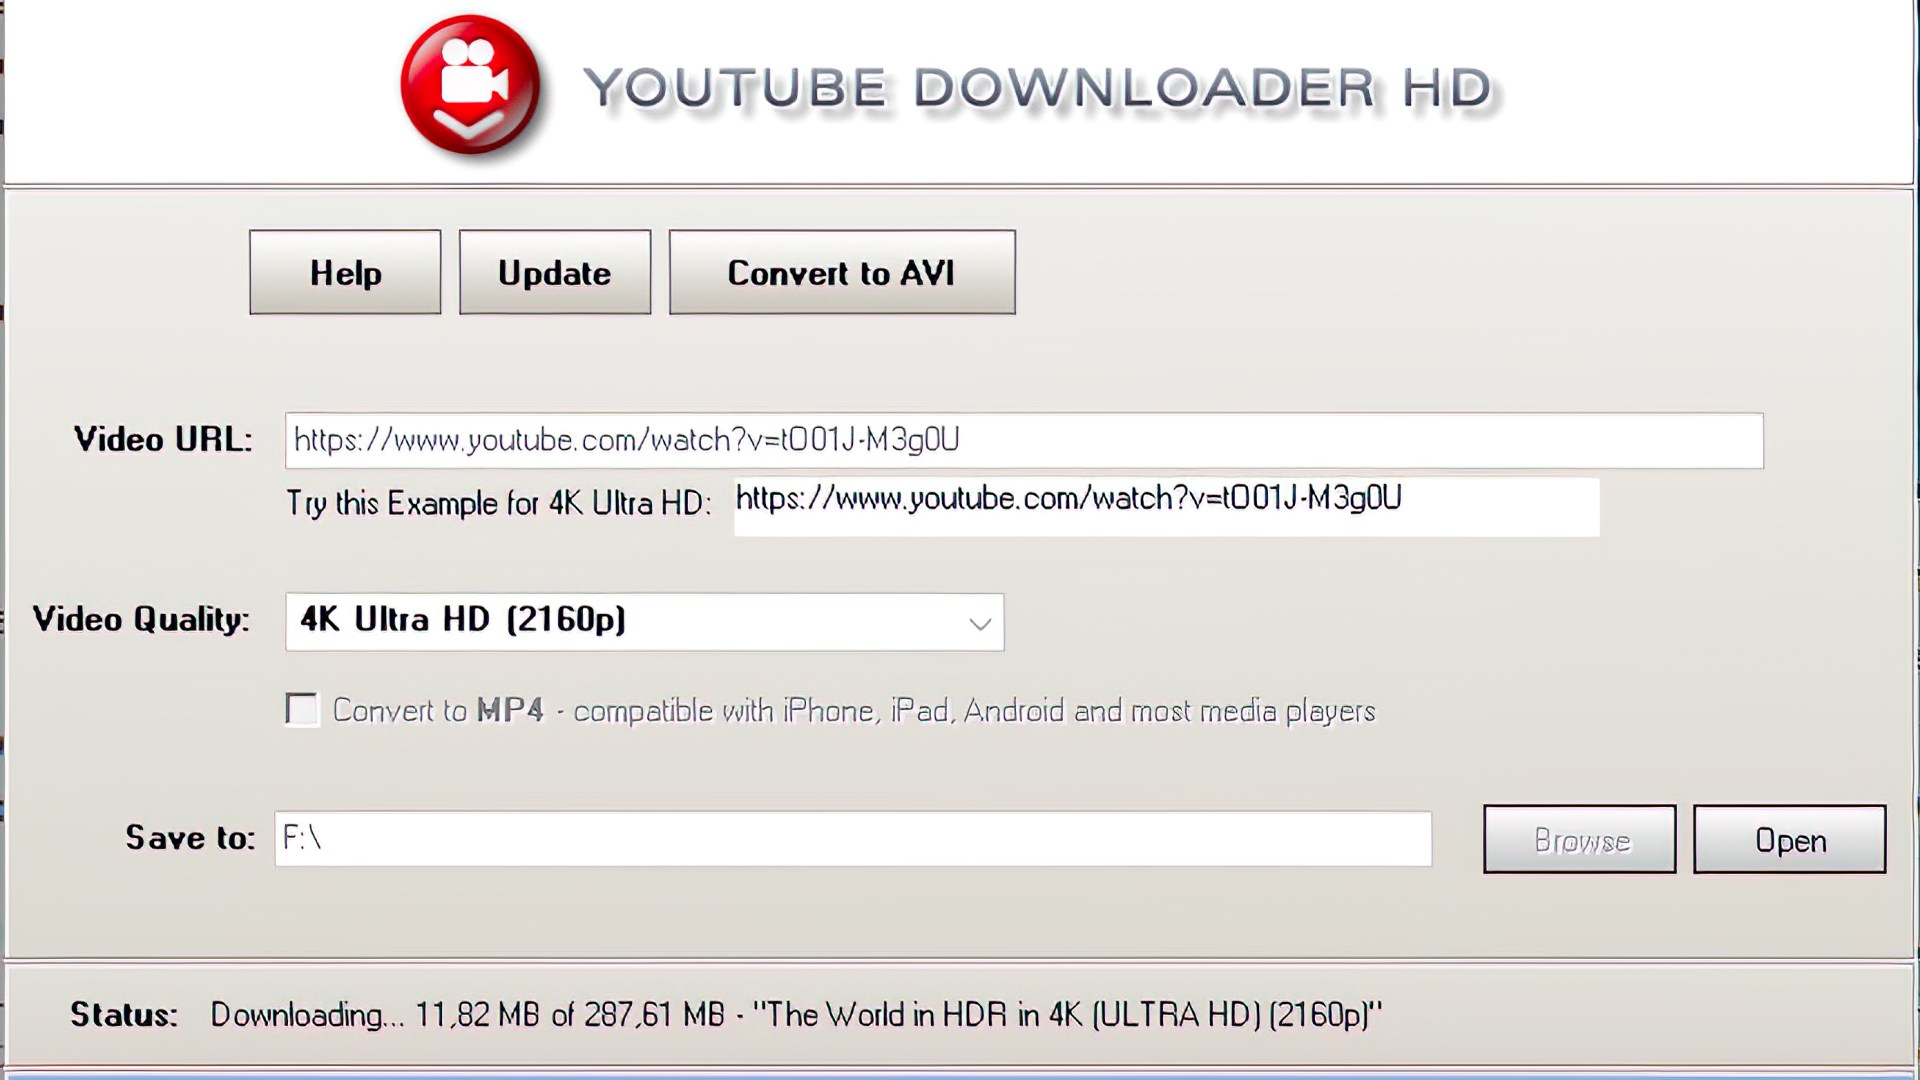 Youtube, video downloader, YouTube Downloader HD